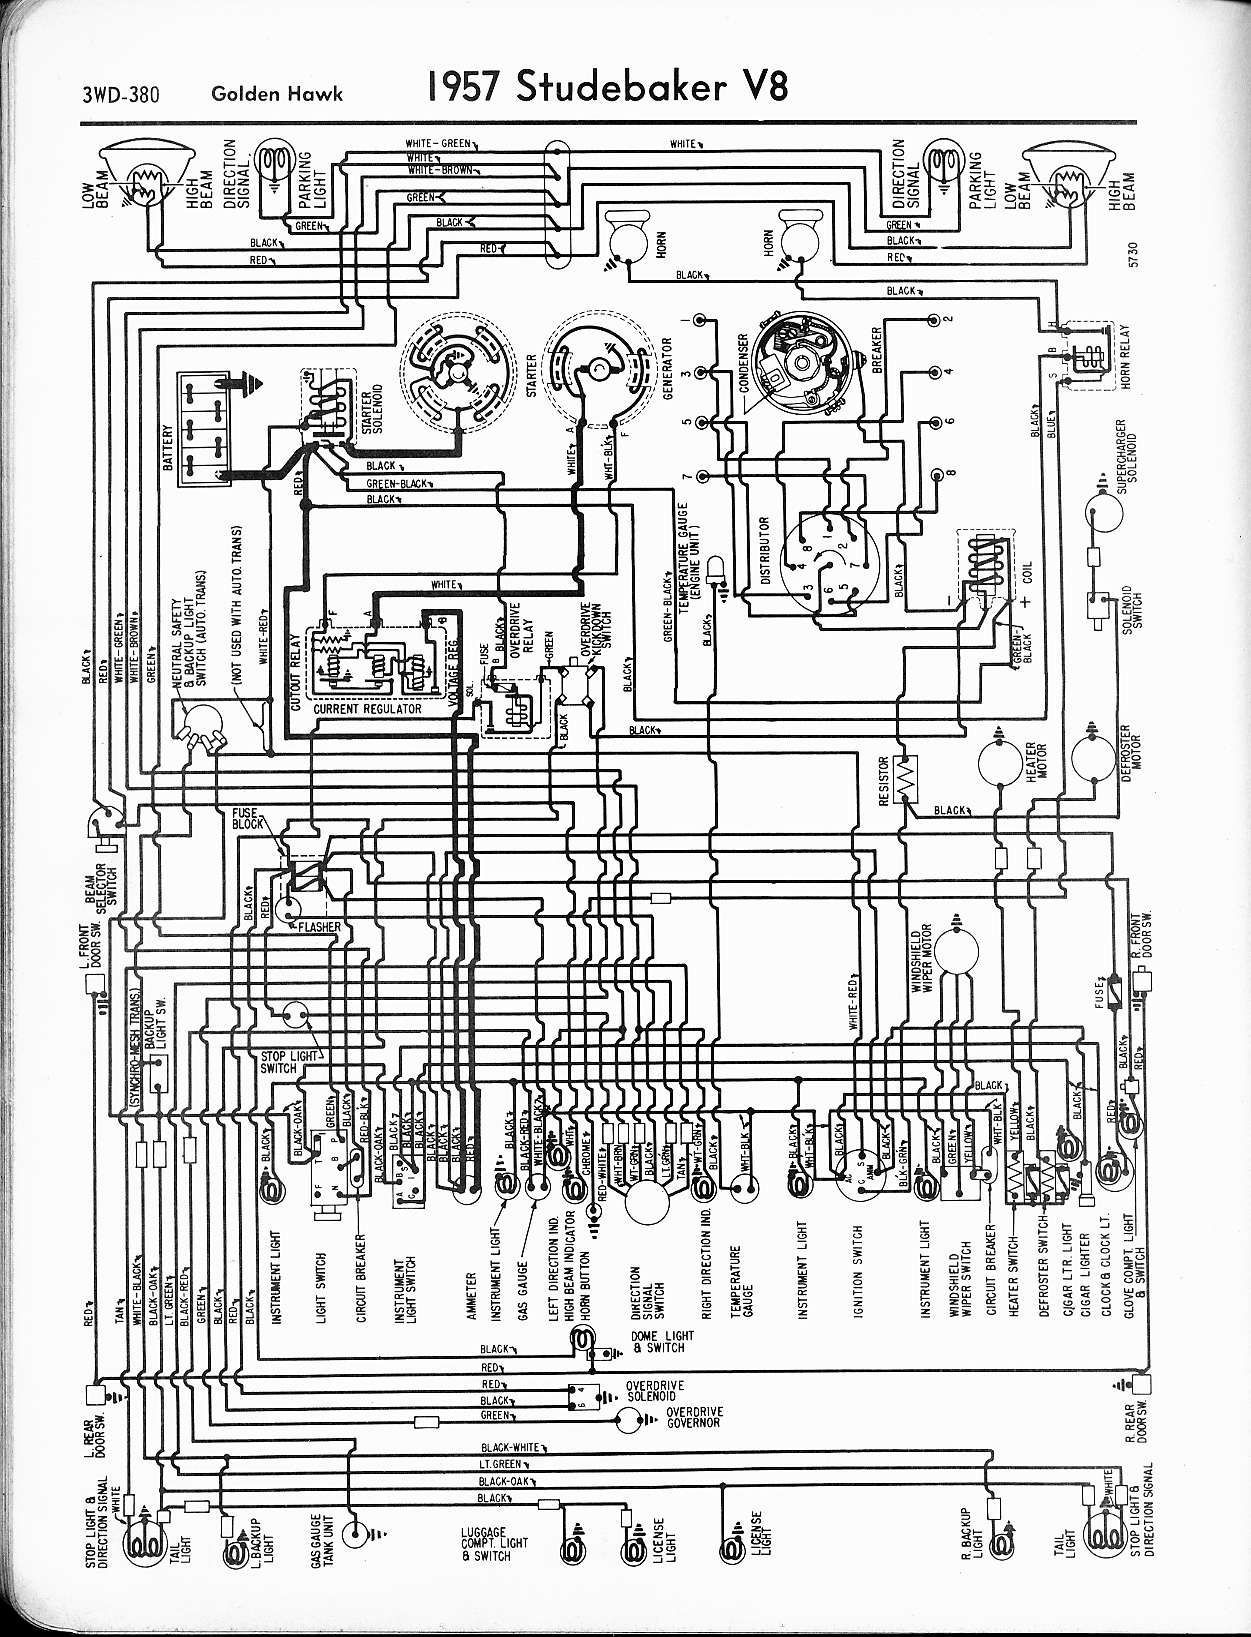 hight resolution of studebaker wiring diagrams the old car manual project wiring diagram for 1957 studebaker v8 golden hawk